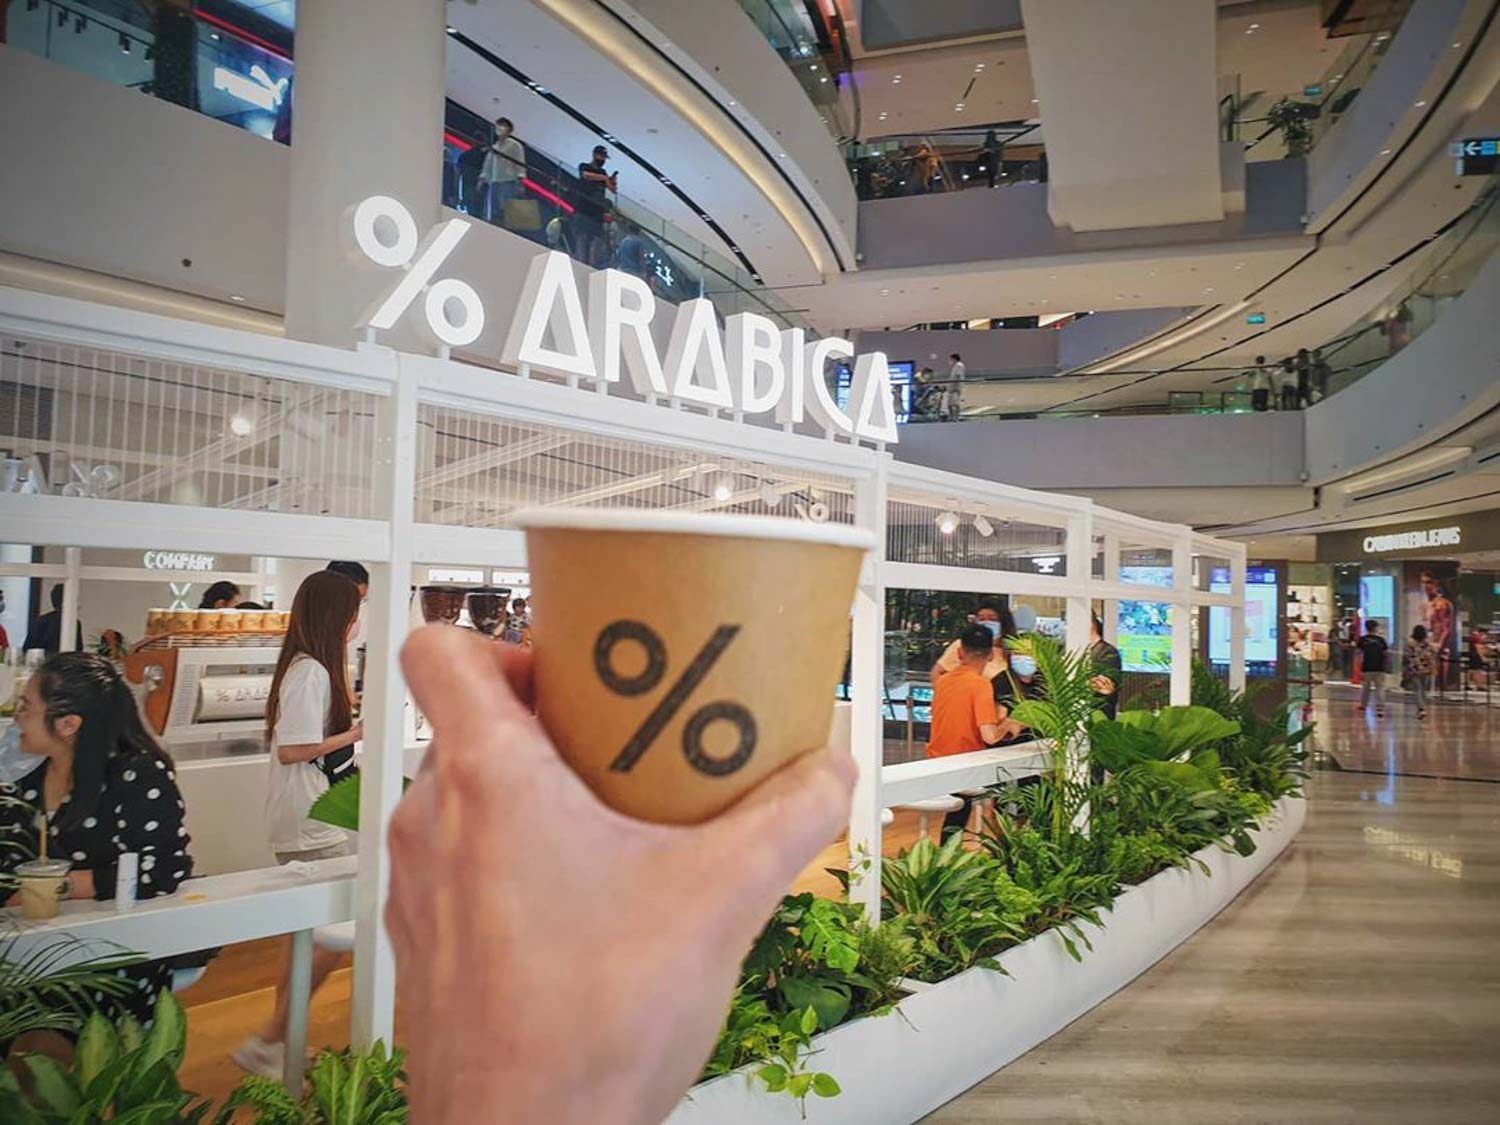 %arabica - jewel outlet coffee